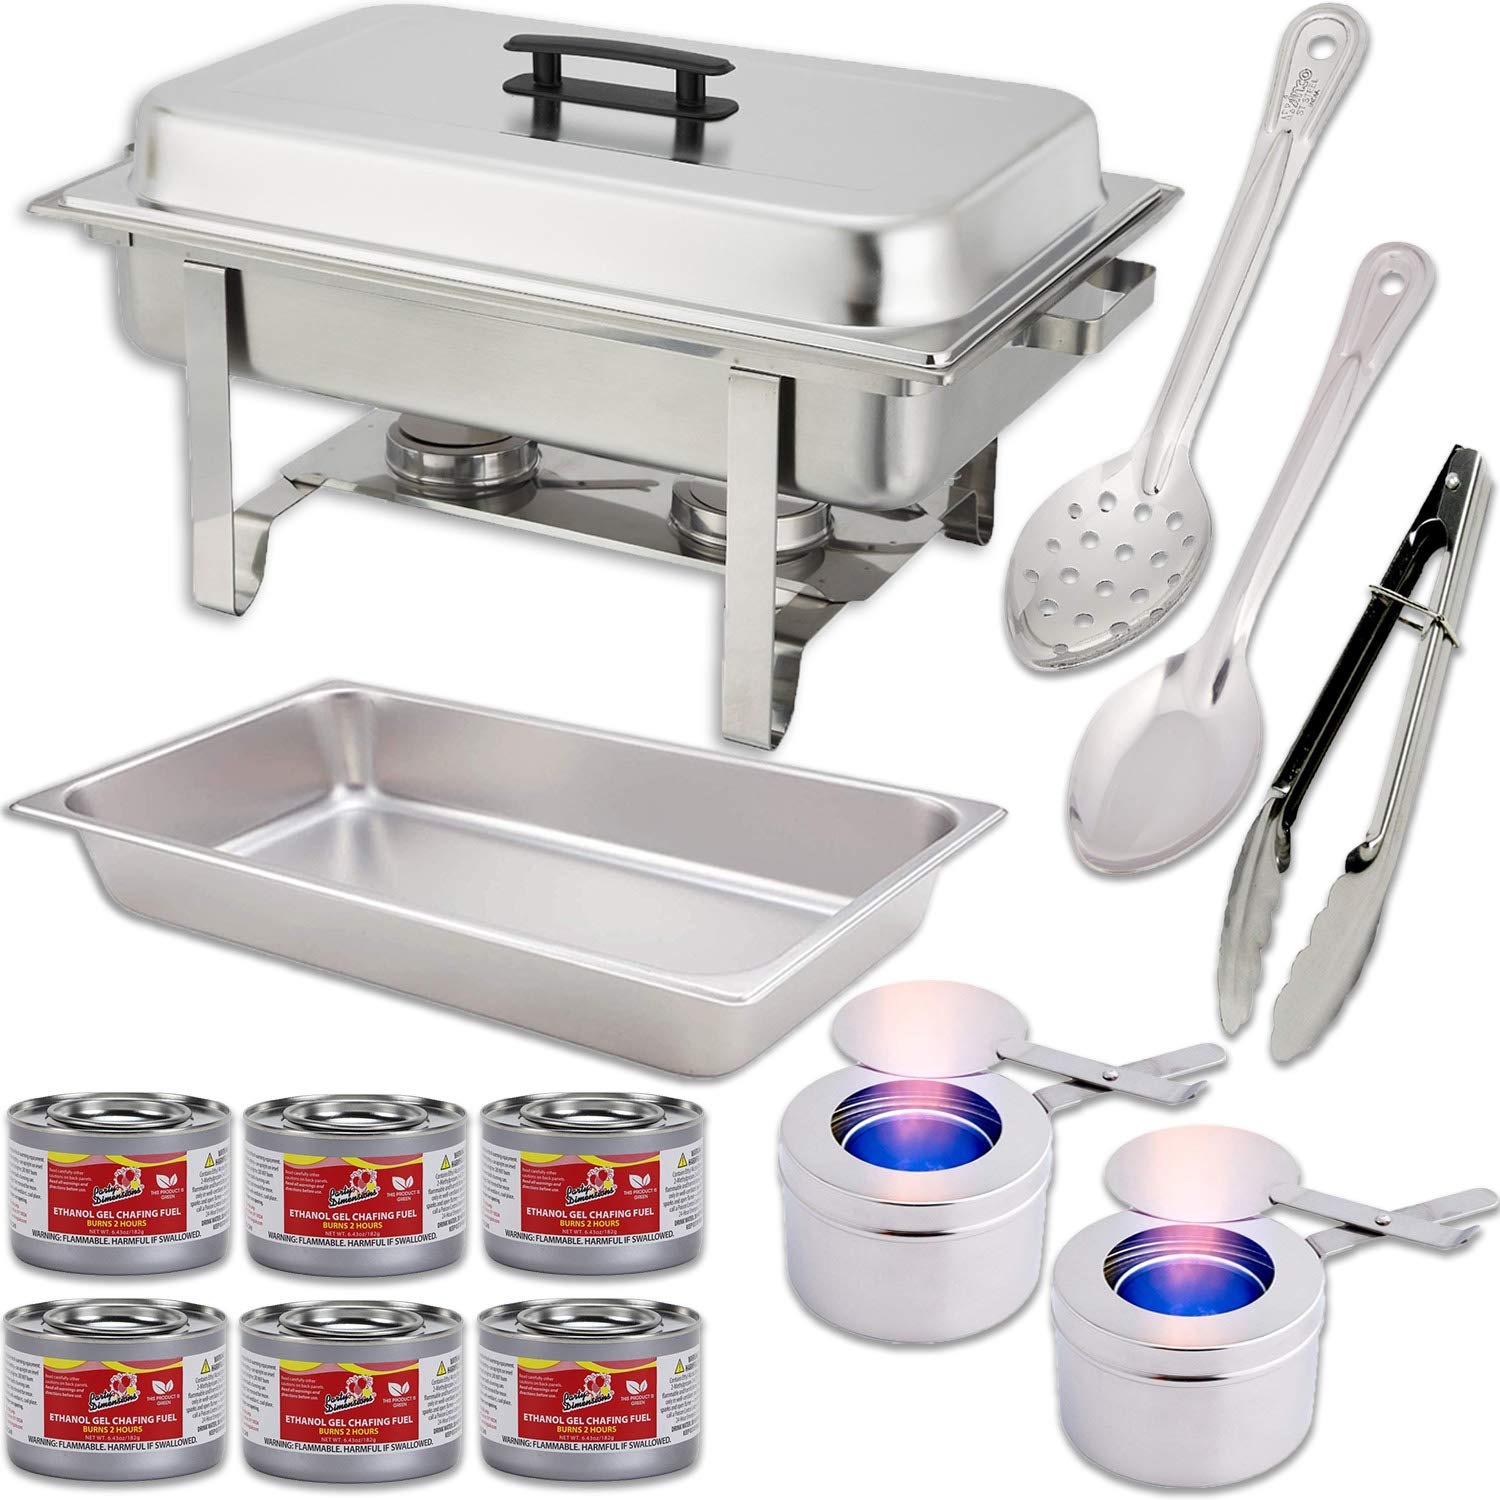 "Chafing Dish Set w/Fuel — Water Pan + Food Pan (8 qt) + Frame + 2 Fuel Holders + 6 Fuel Cans + 3 Serving Utensils (15"" Solid Spoon + 15"" Perforated Spoon + 9"" Tongs) – Stainless-Steel Warmer Kit HeroFiber"